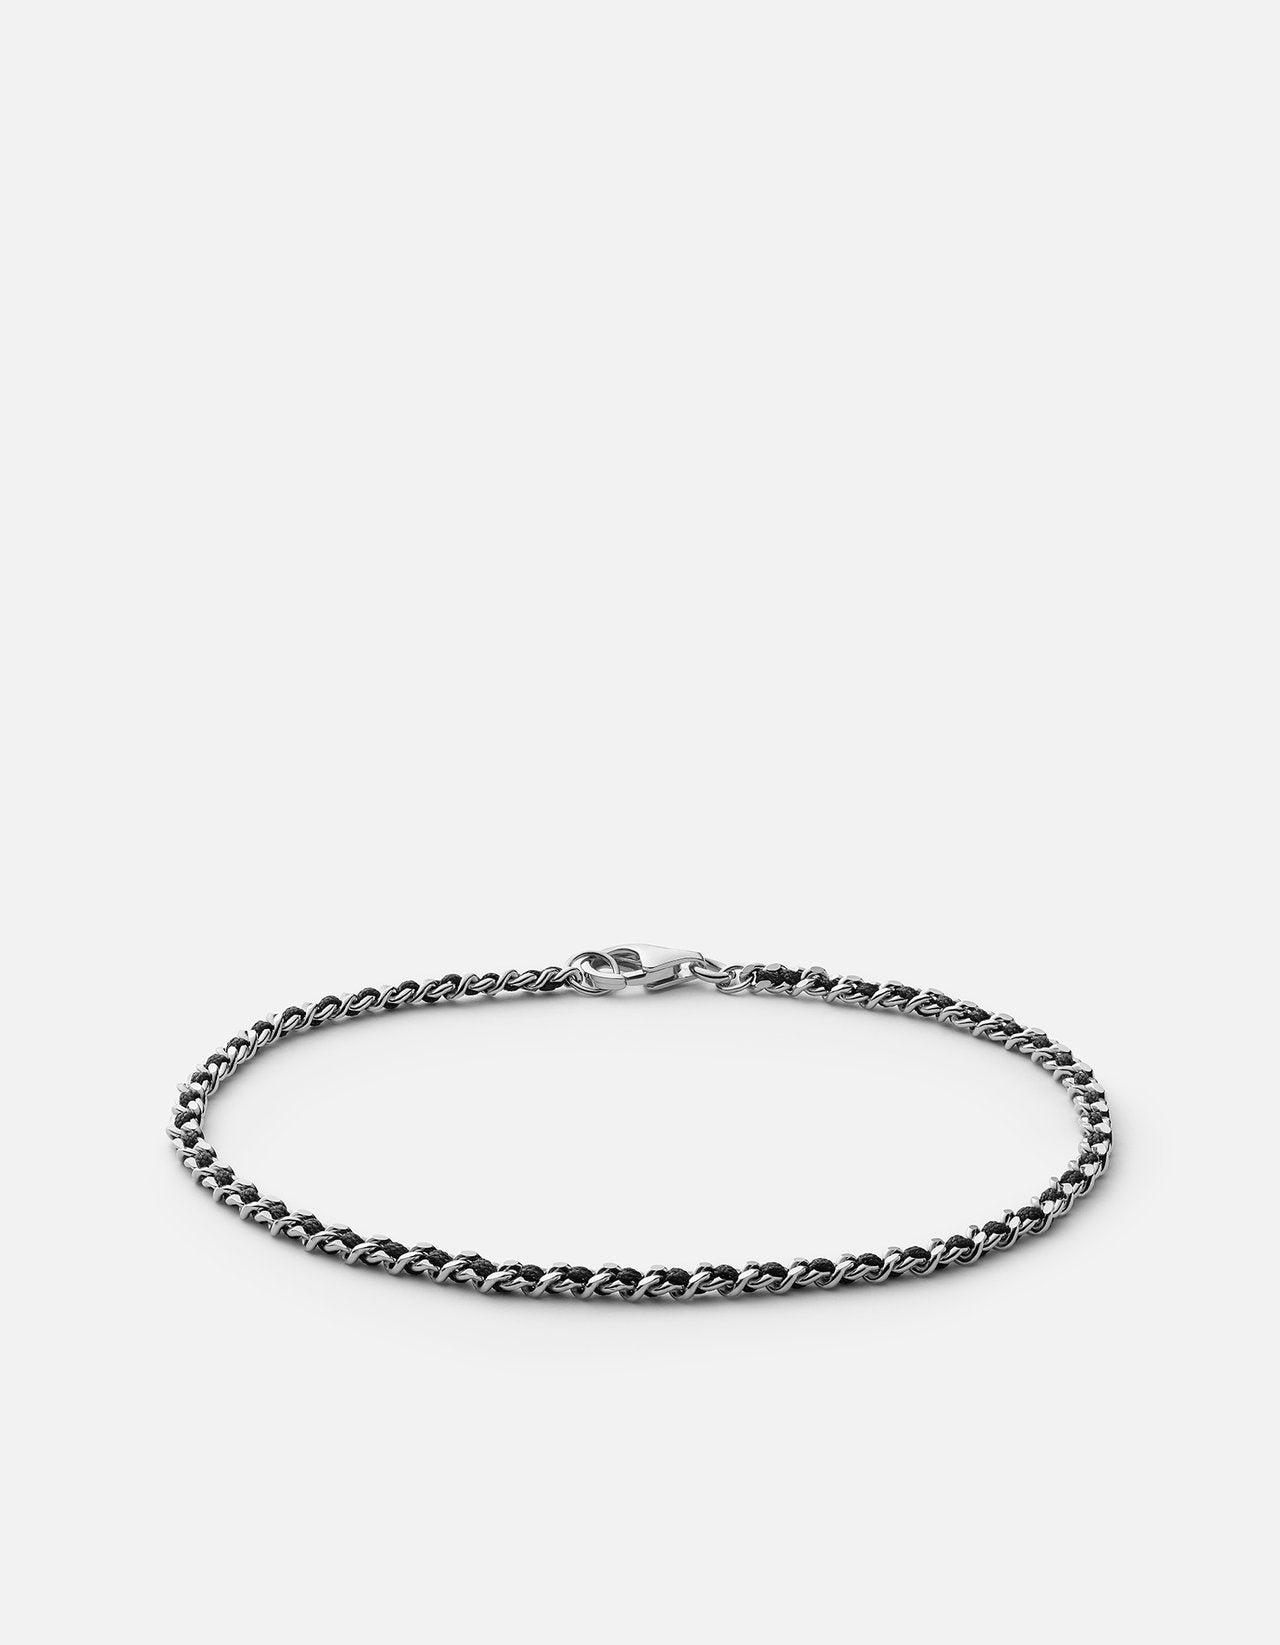 Miansai 2mm Braided Chain Bracelet, Sterling Silver, Polished